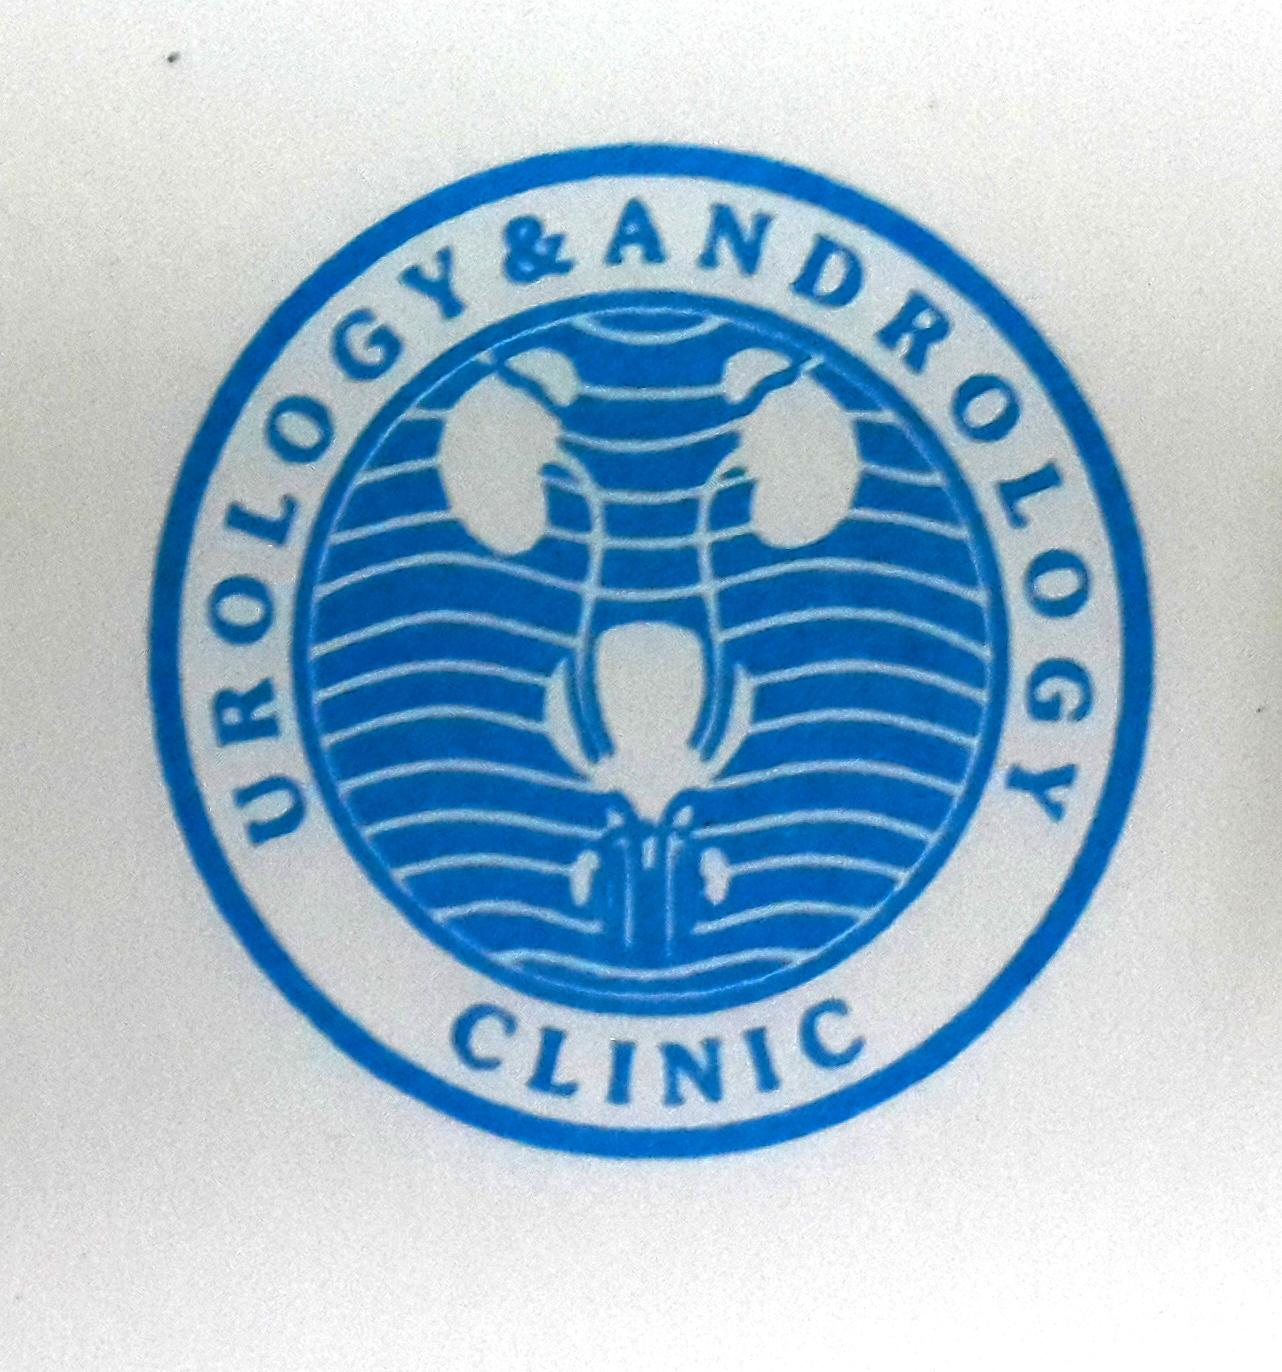 Urology and Andrology Clinic